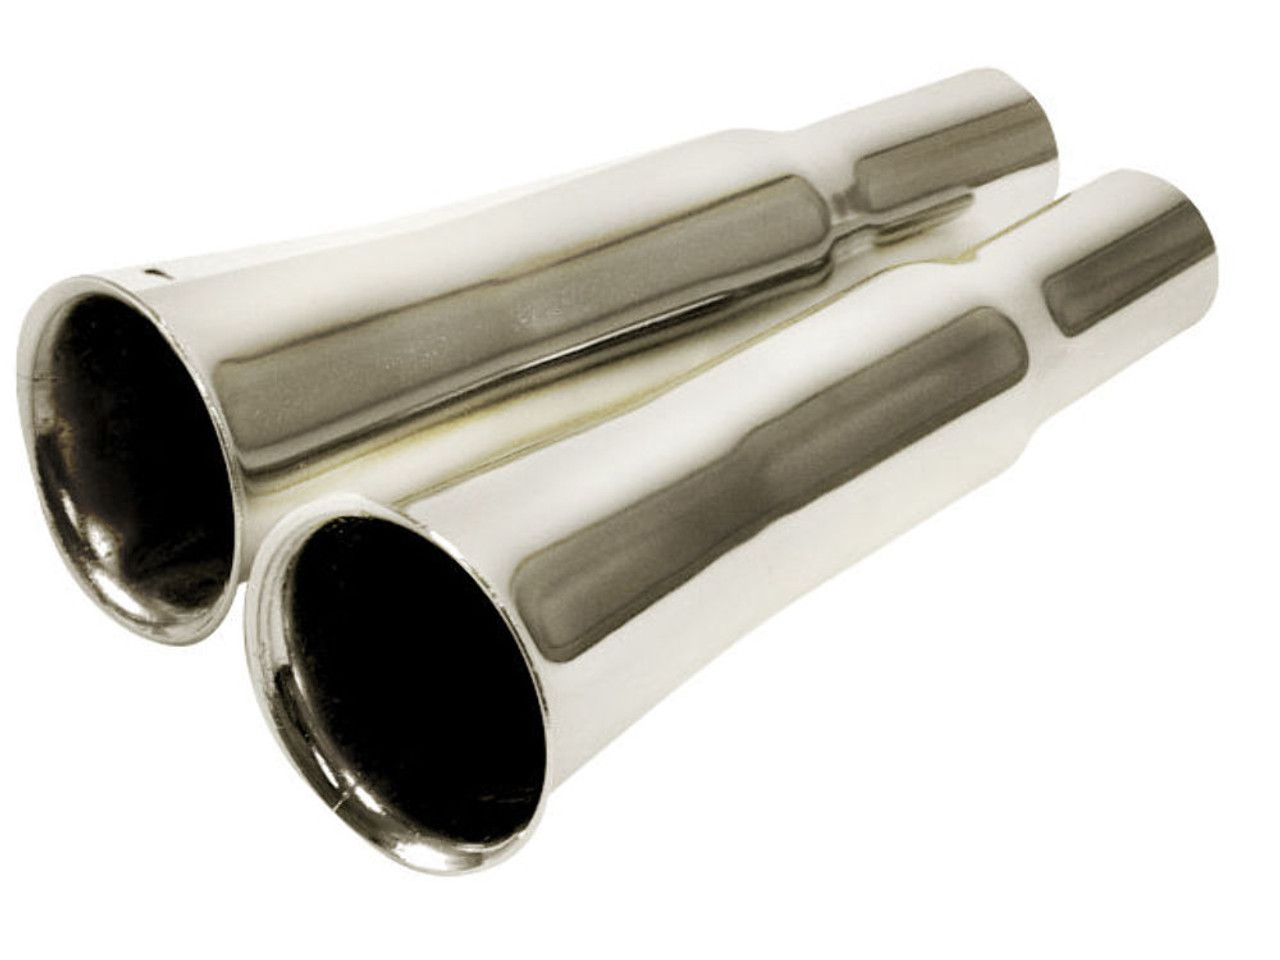 Classic VW Beetle Exhaust Muffler Tailpipe Zoom Tube Chrome Cannon Pipe Bug T1